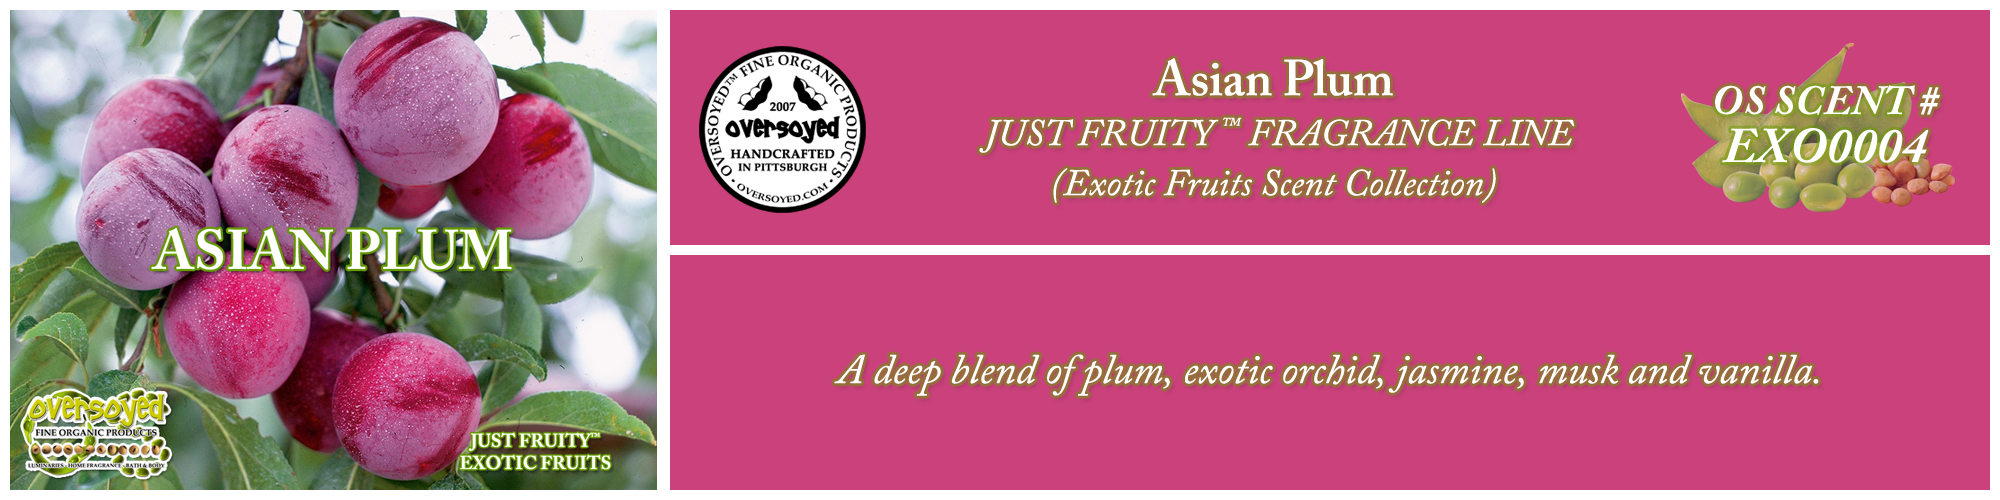 Asian Plum Handcrafted Products Collection